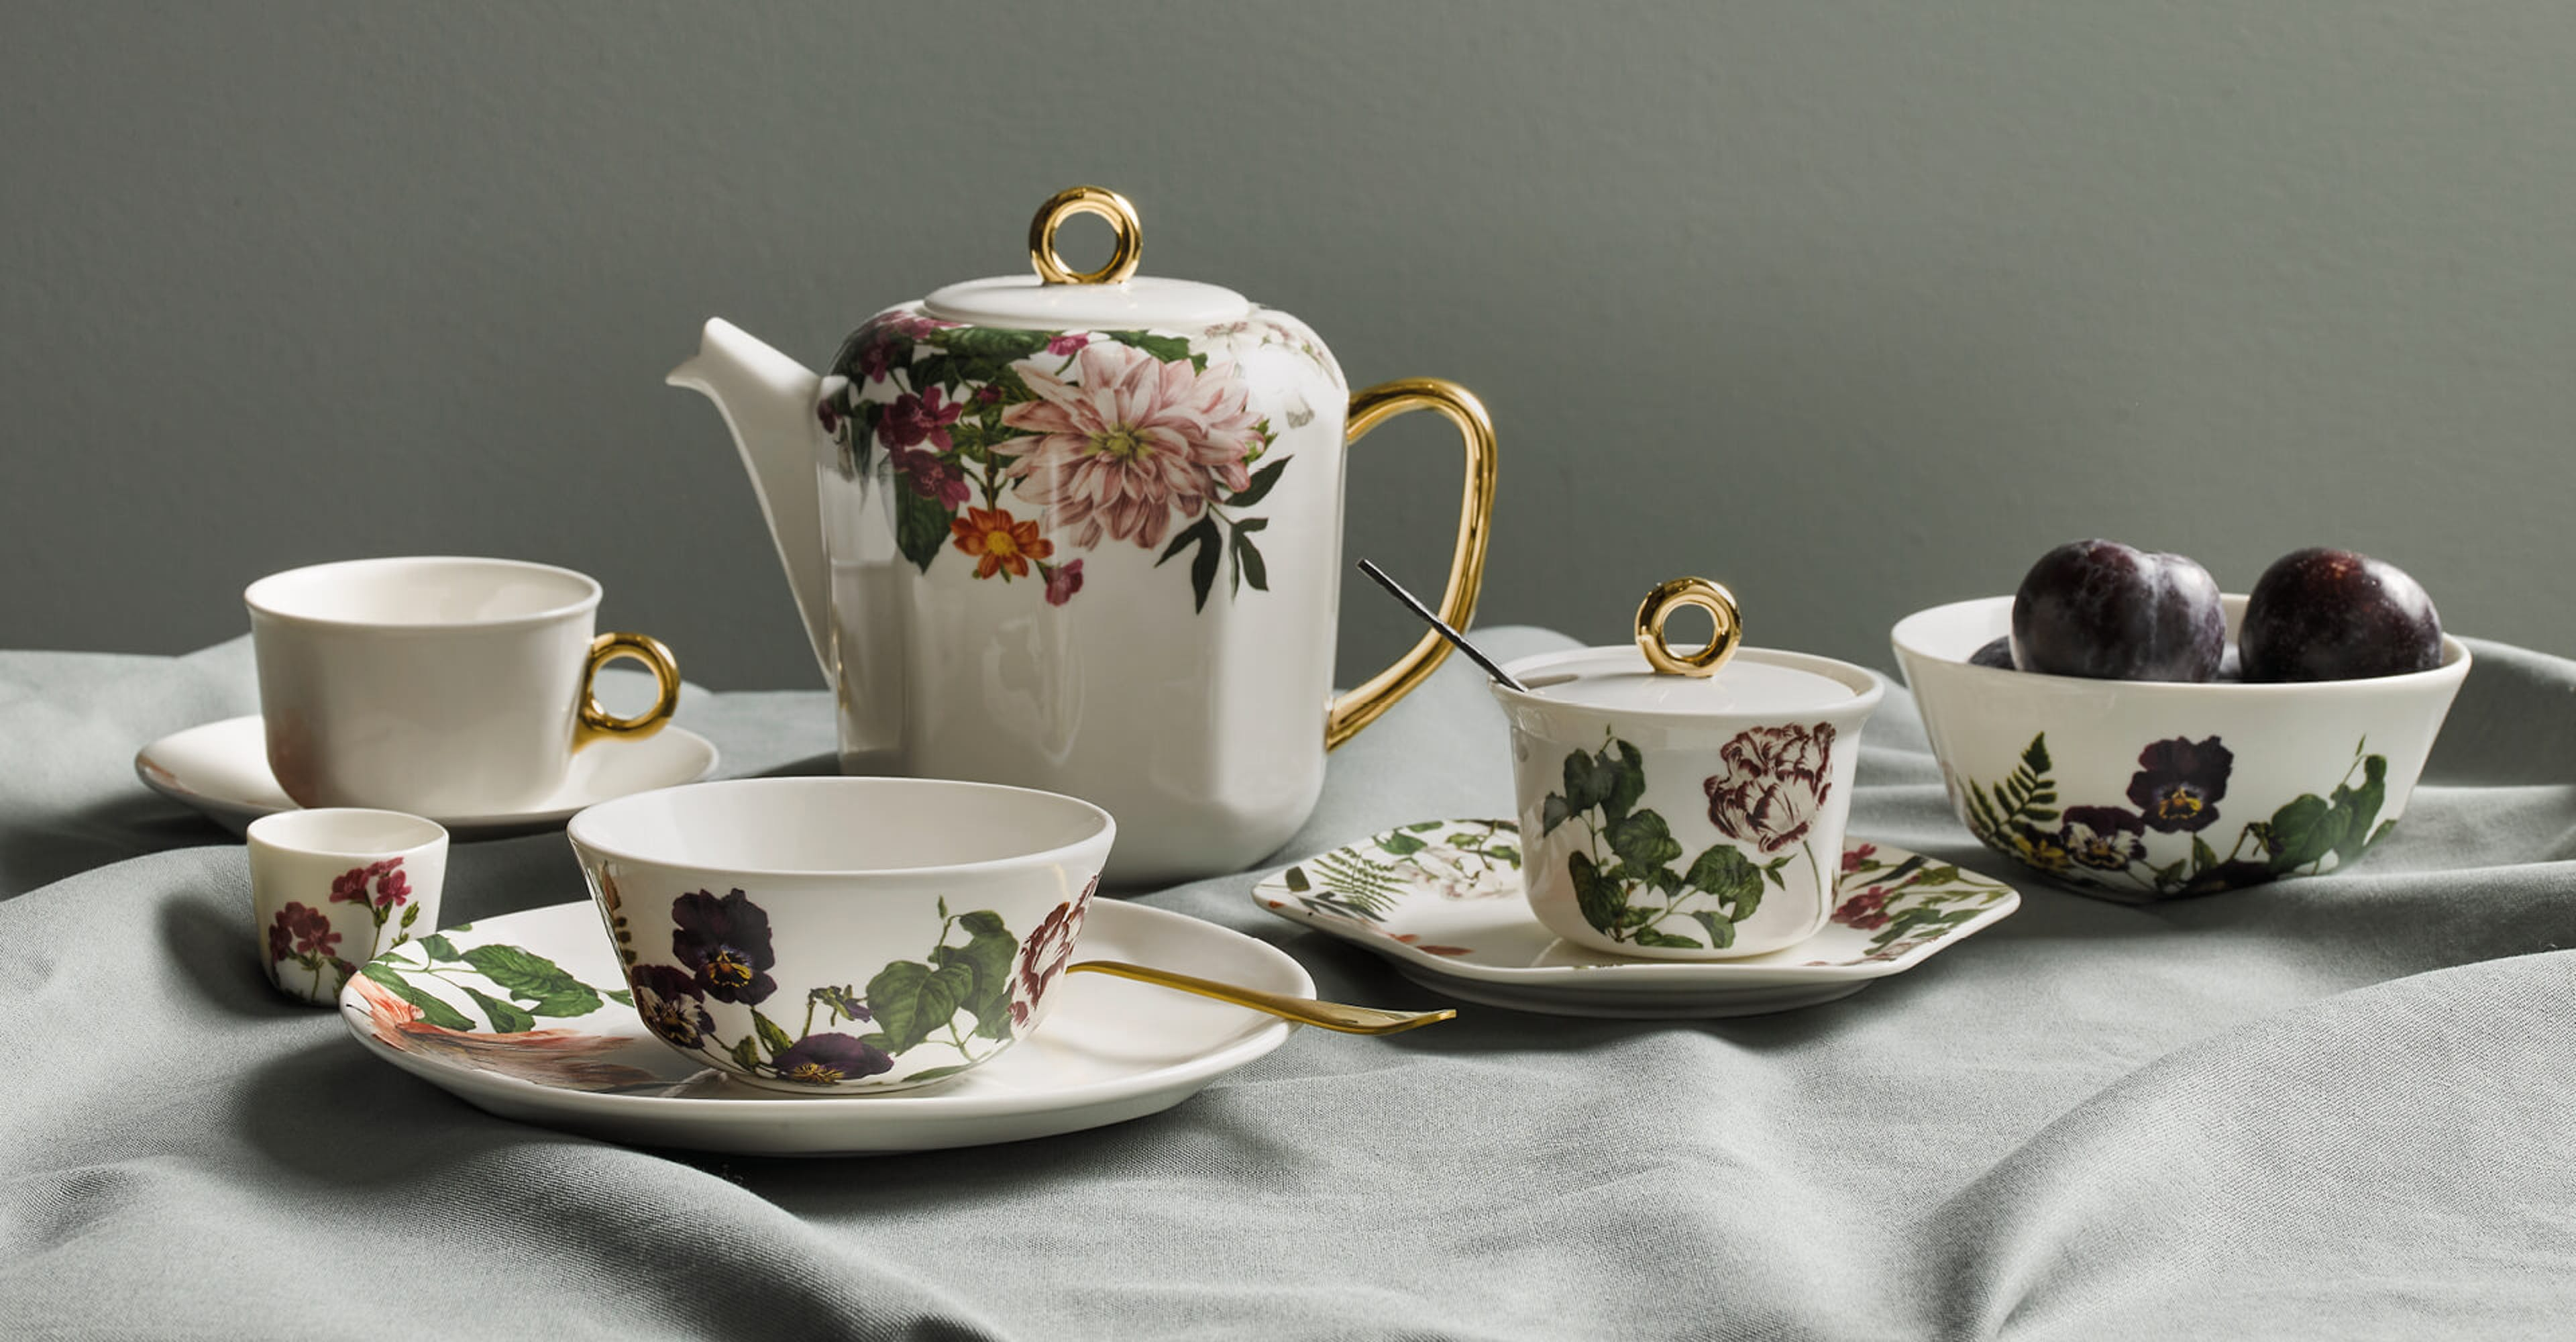 ESSENZA The Porcelain Collection